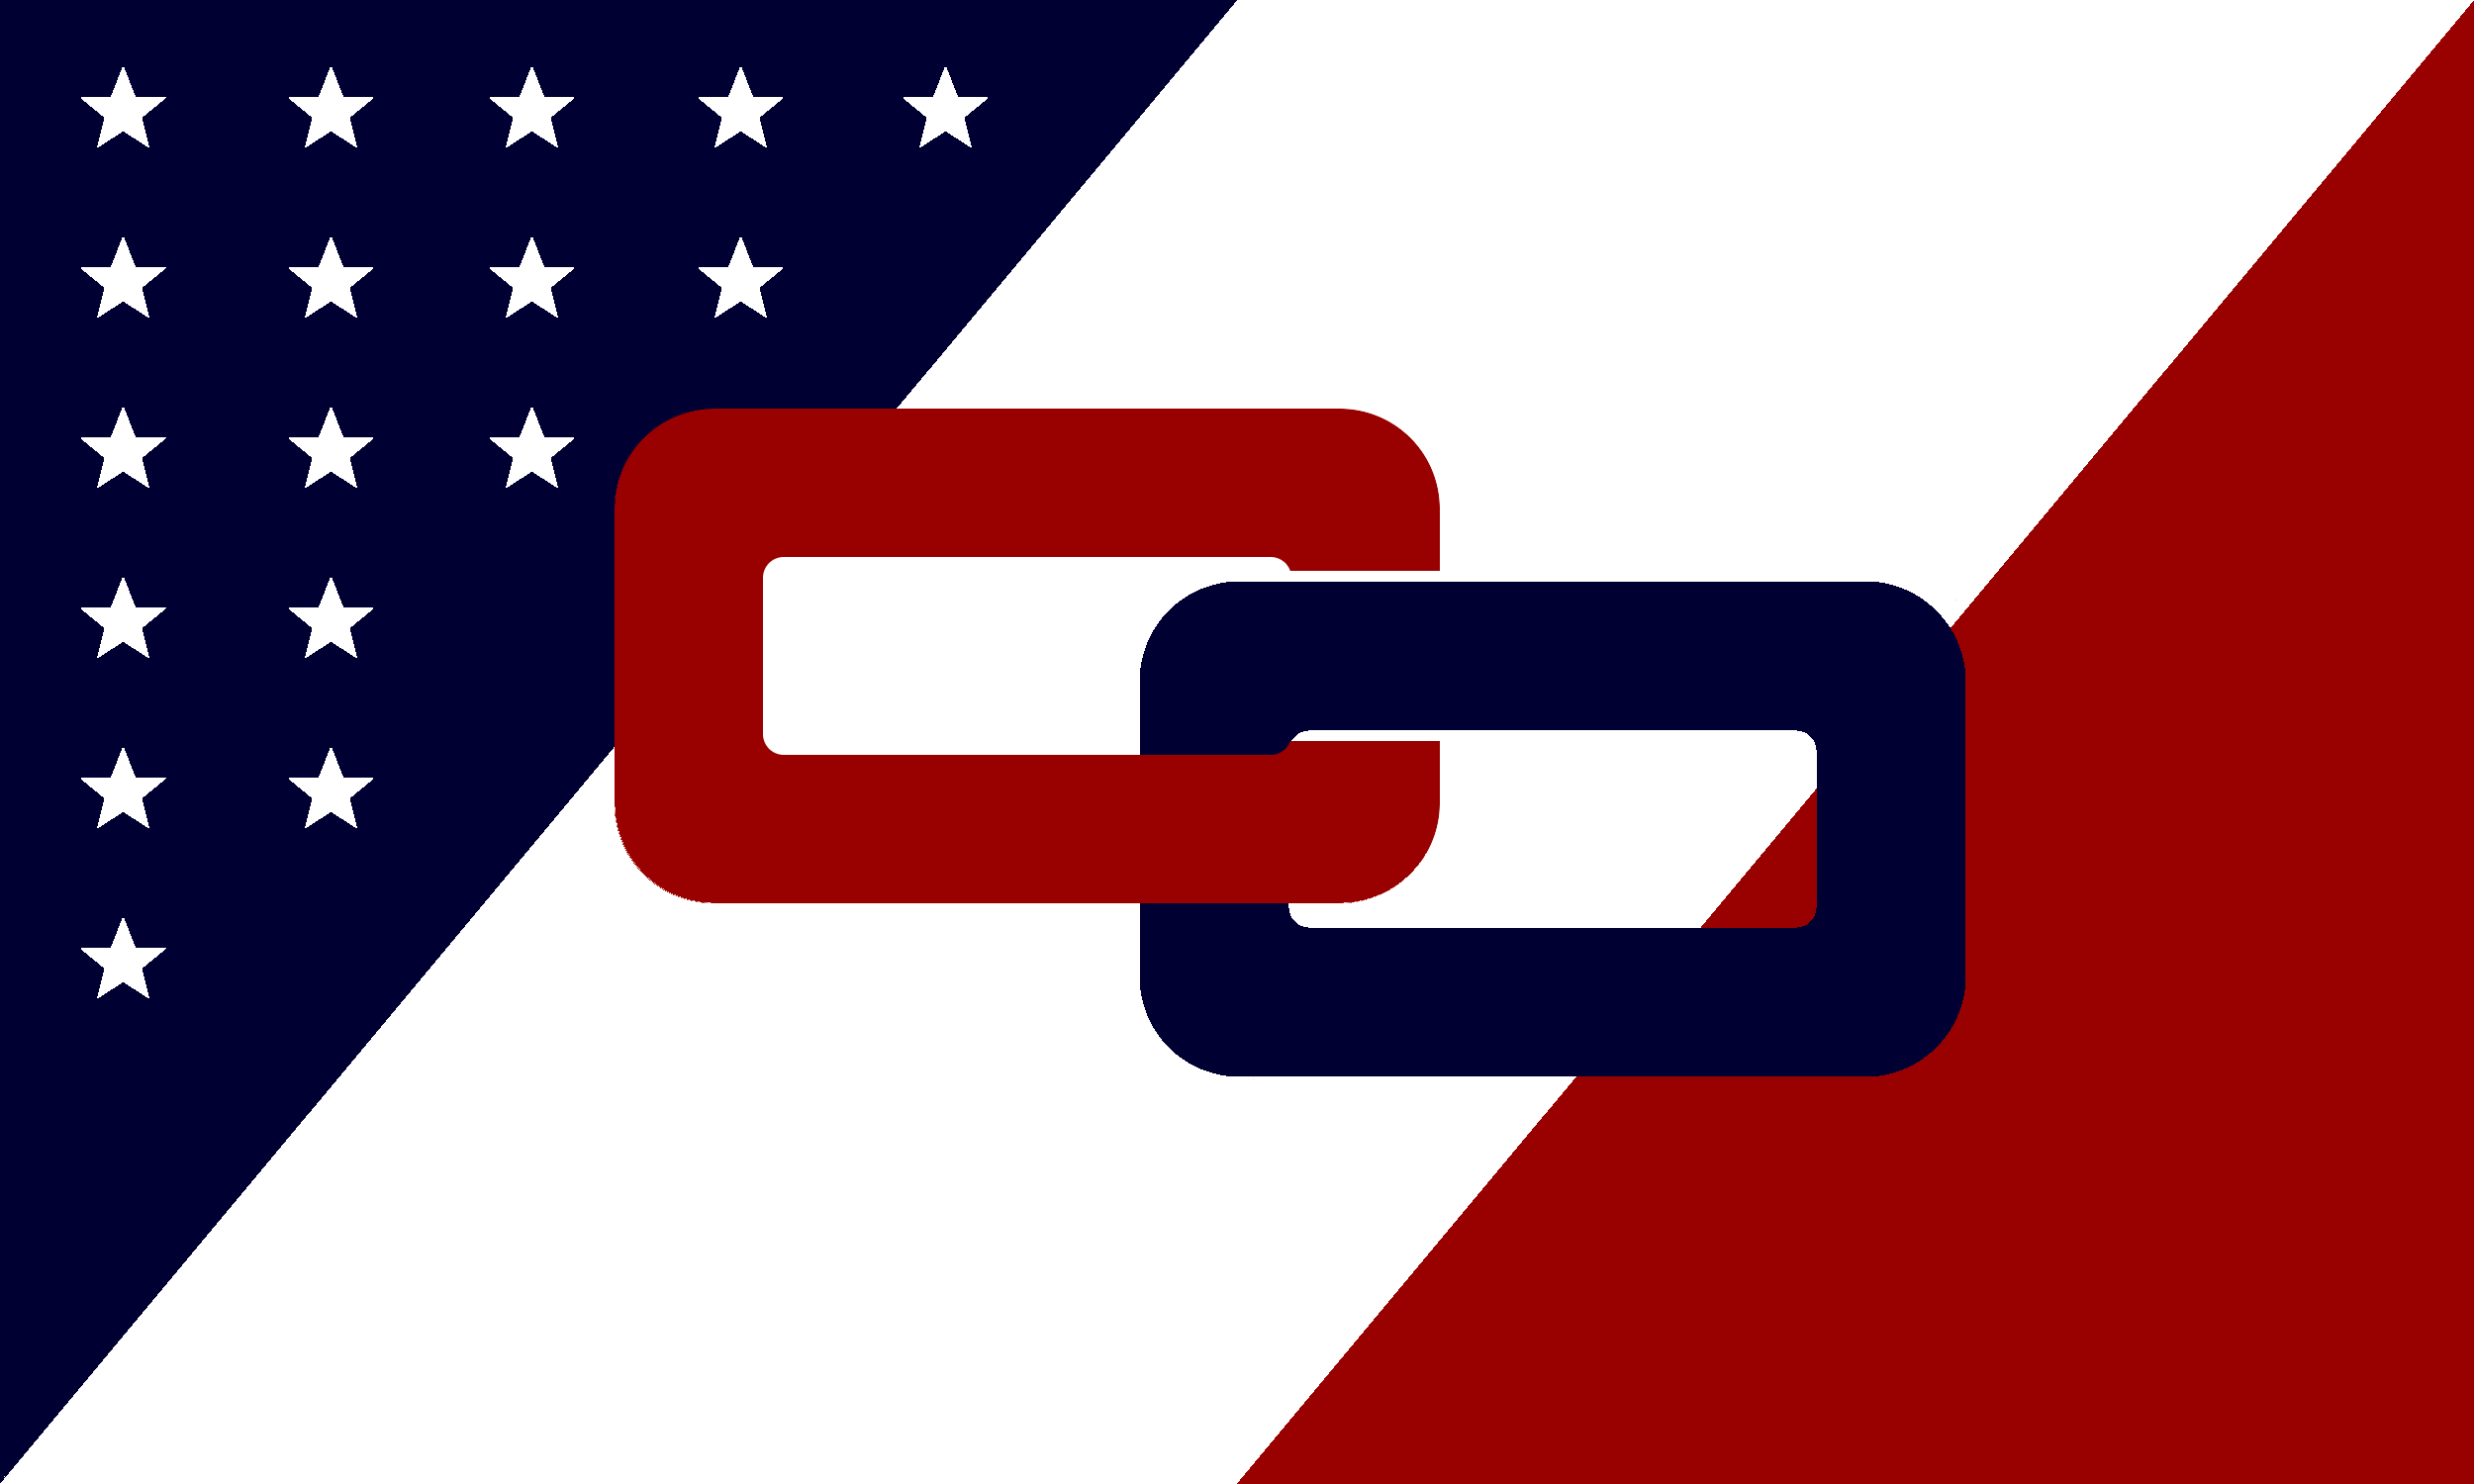 Canton Ohio Flag